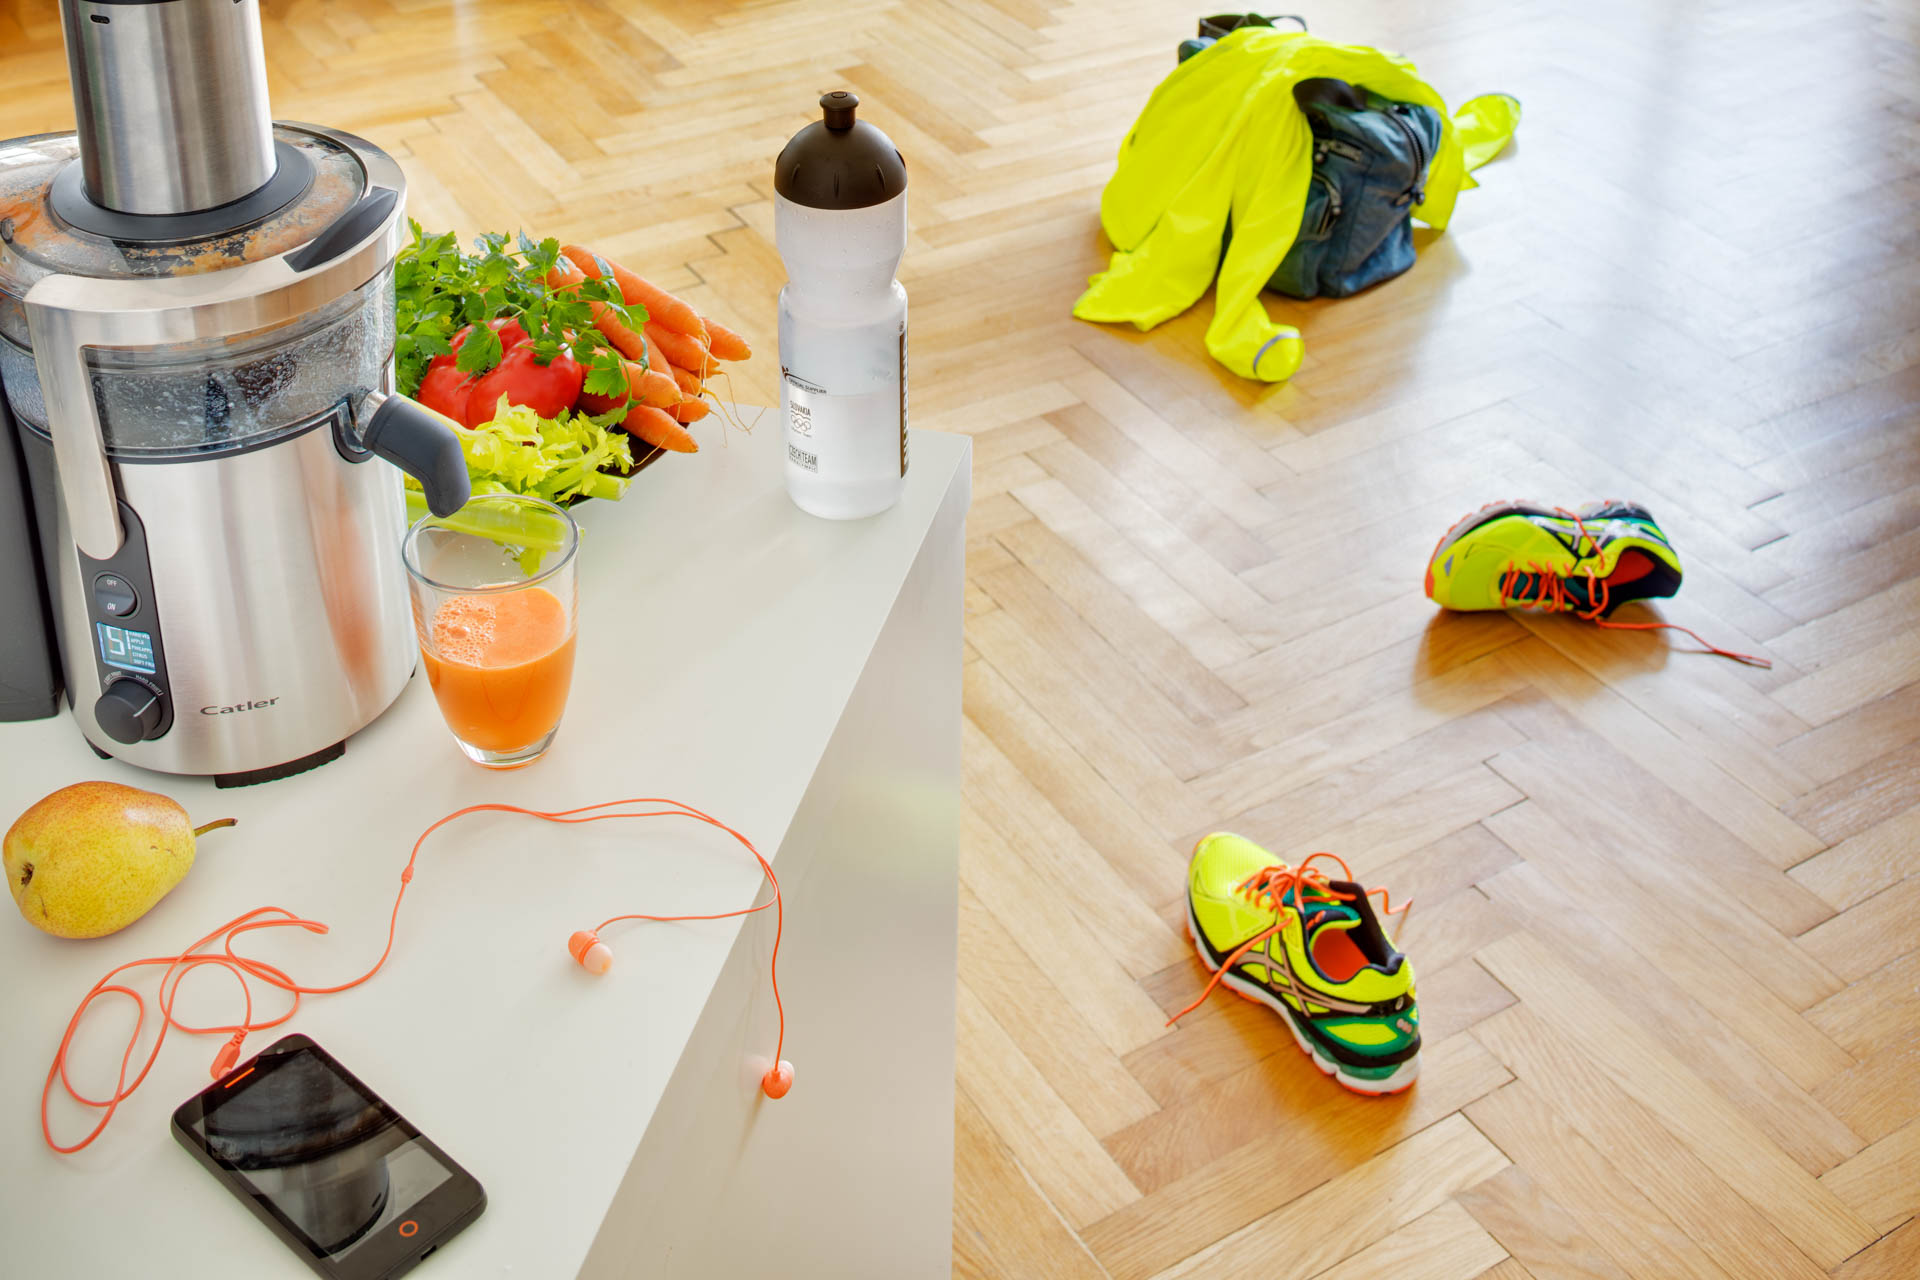 Juicer with juice and jogging outfit